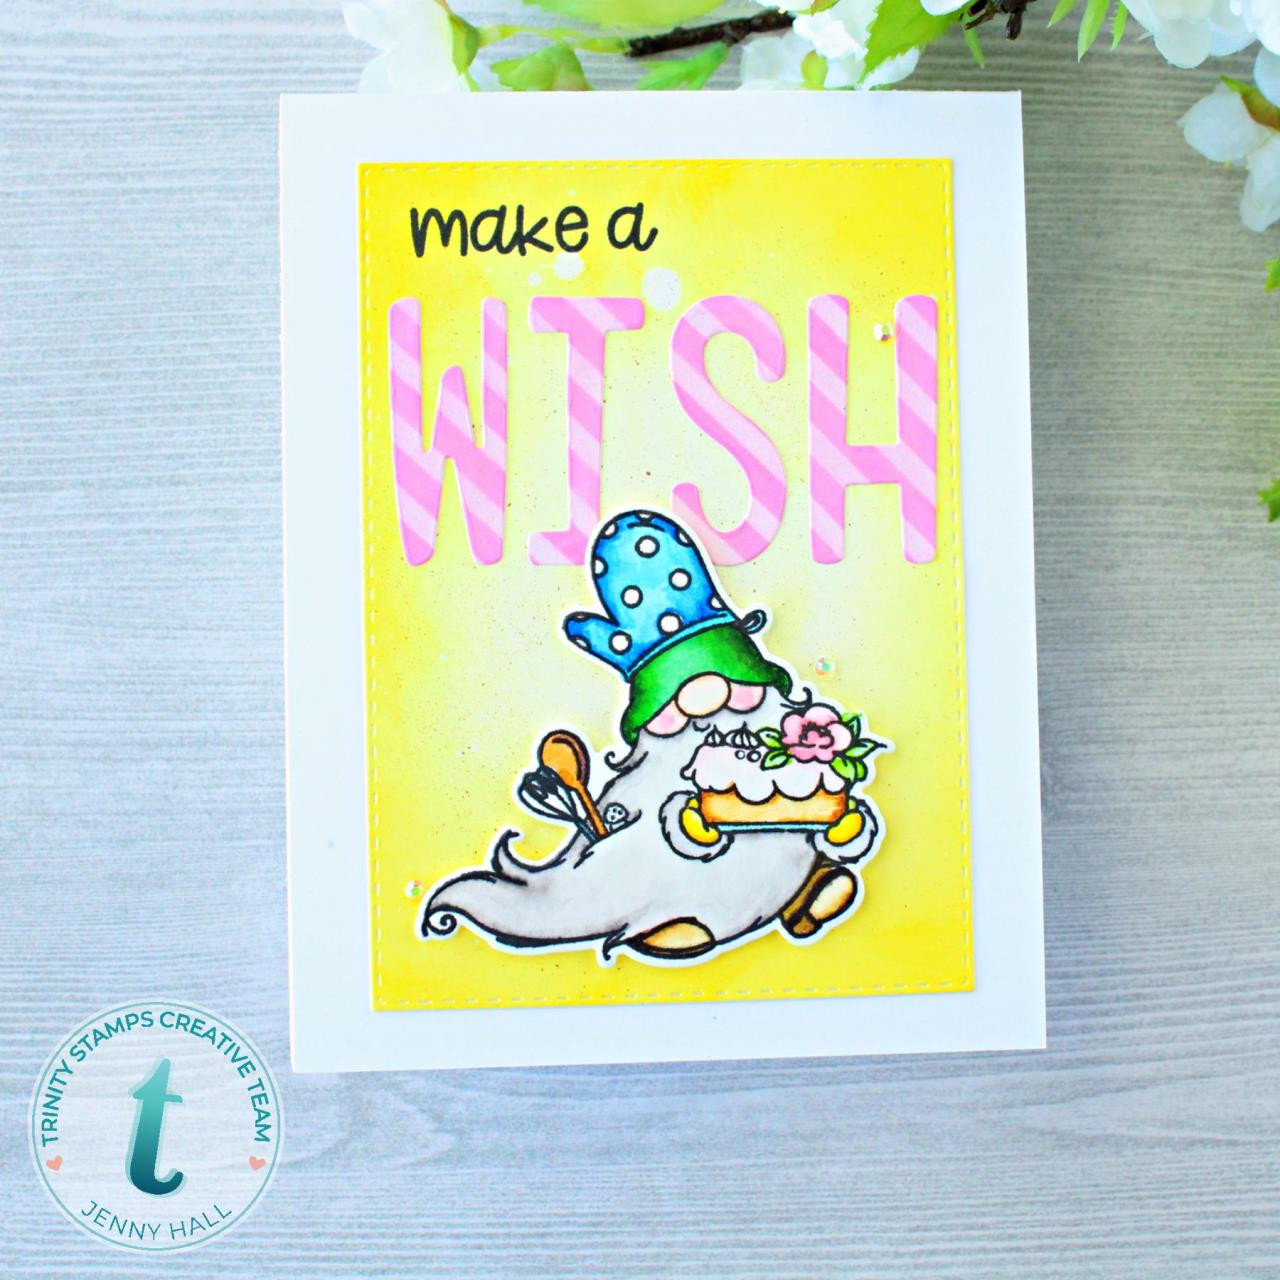 Make a Wish, Trinity Stamps Clear Stamps -